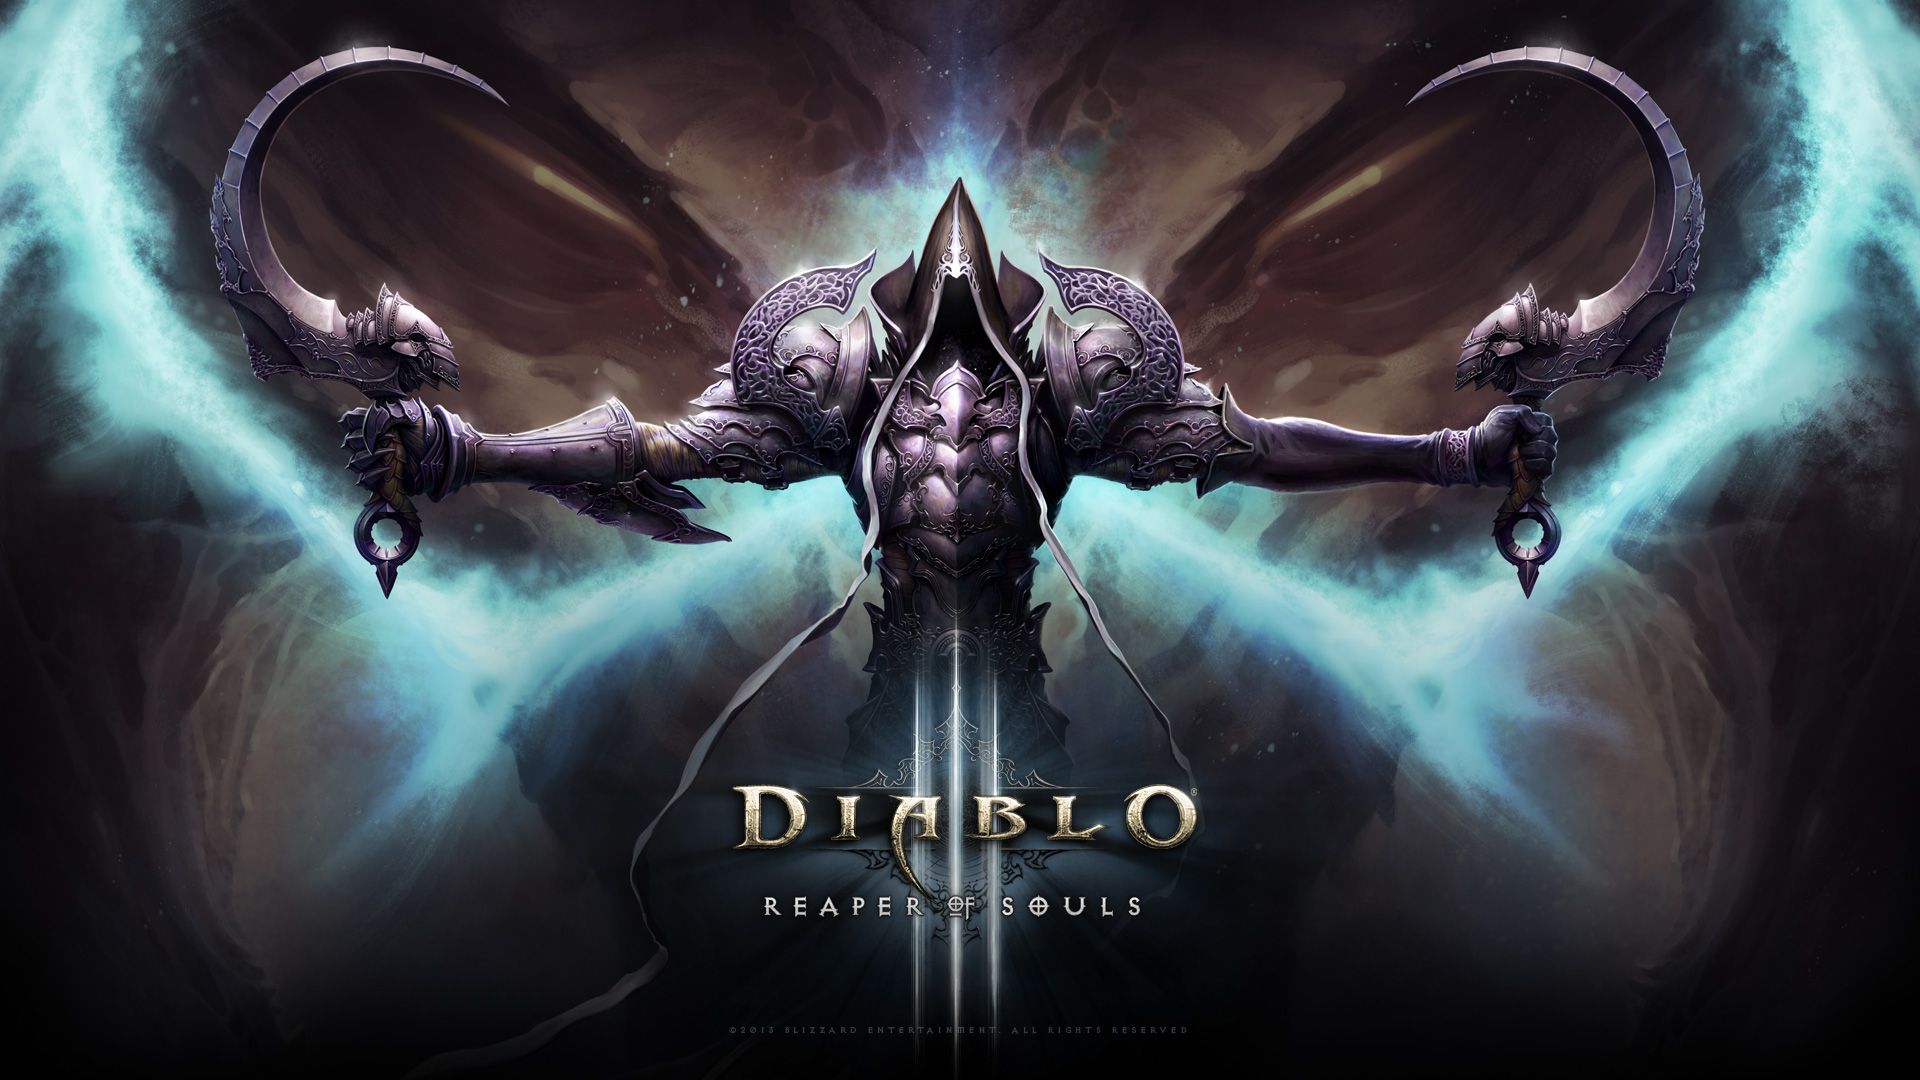 Diablo 3 is coming to the Nintendo Switch